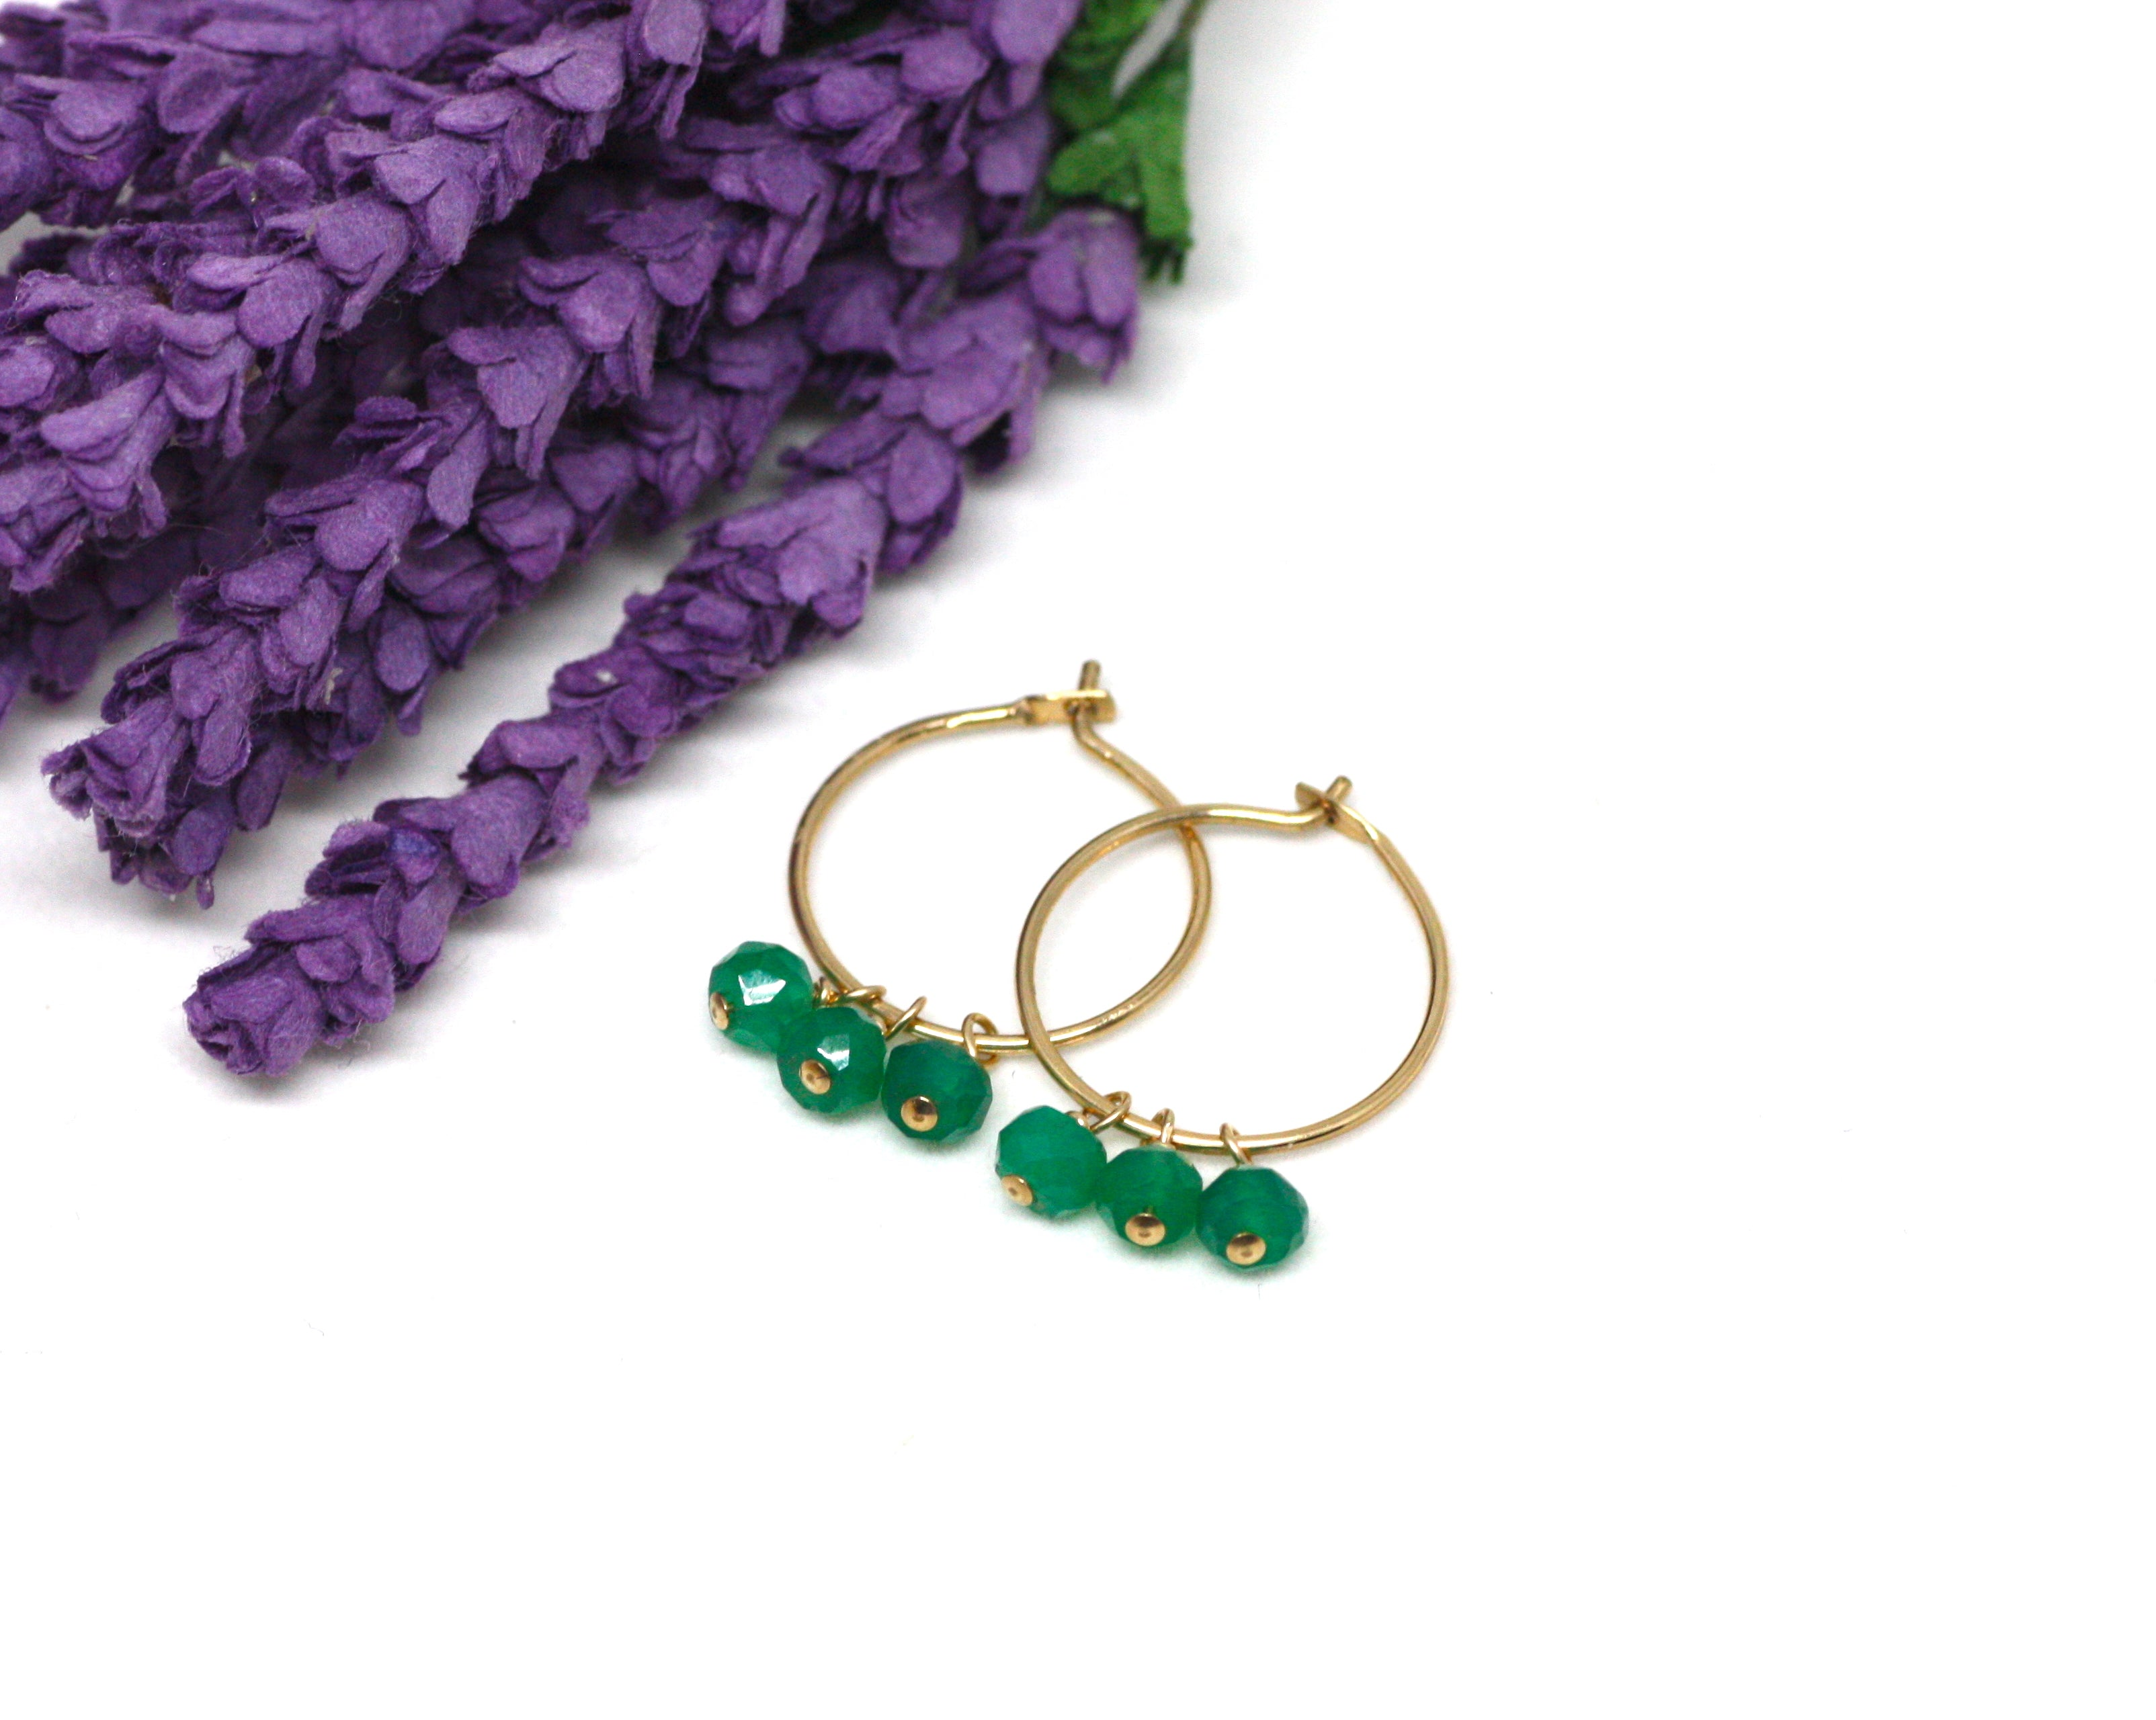 Green Onyx Small Hoop Earrings in Gold